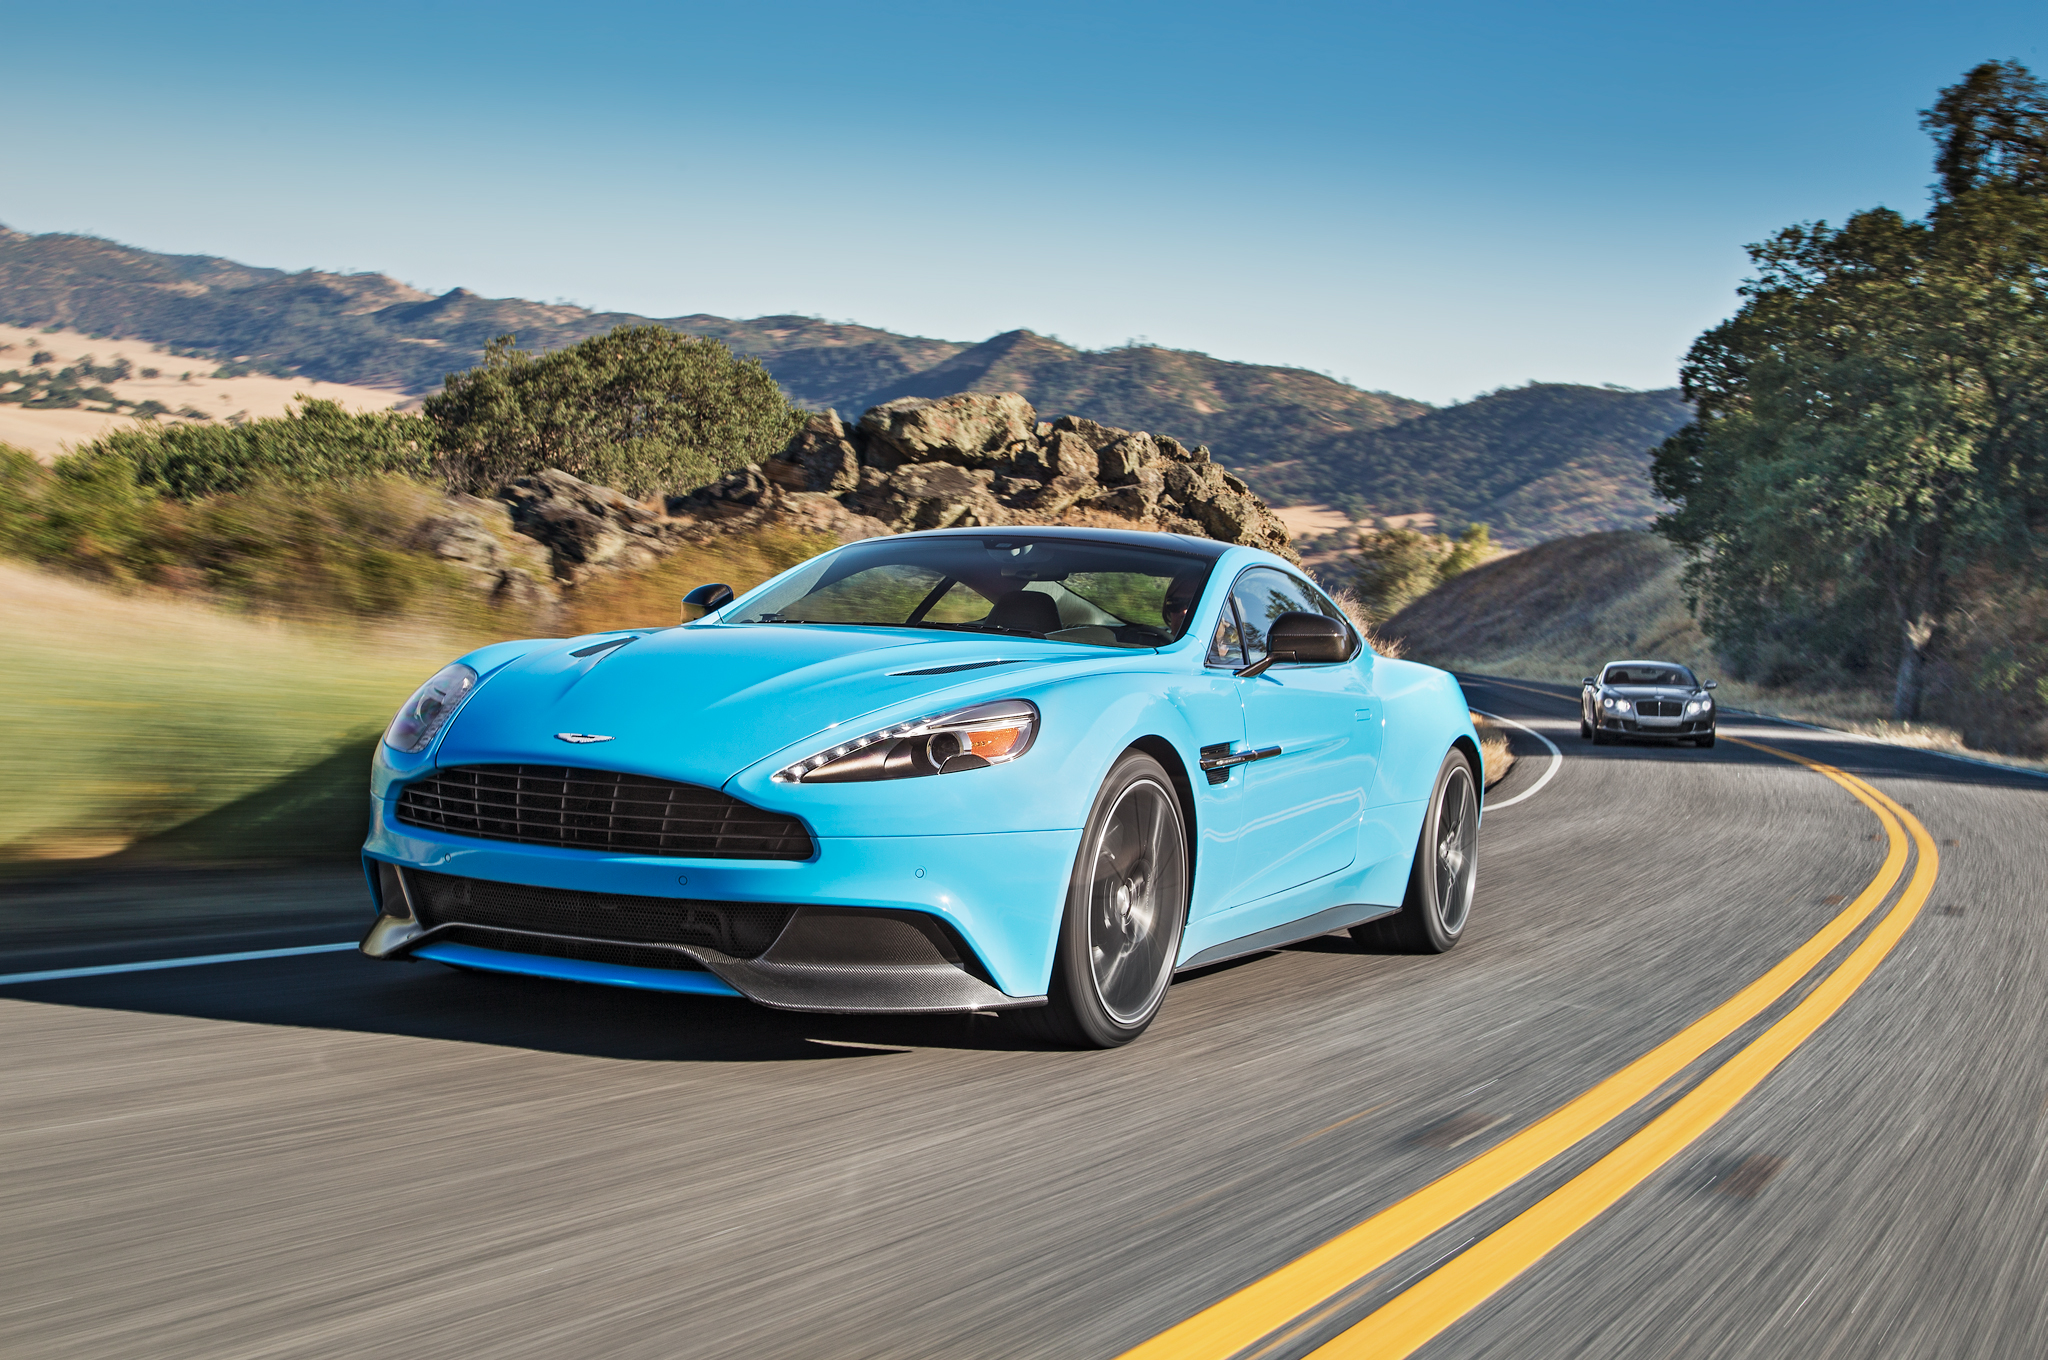 2014 aston martin vanquish - information and photos - zombiedrive